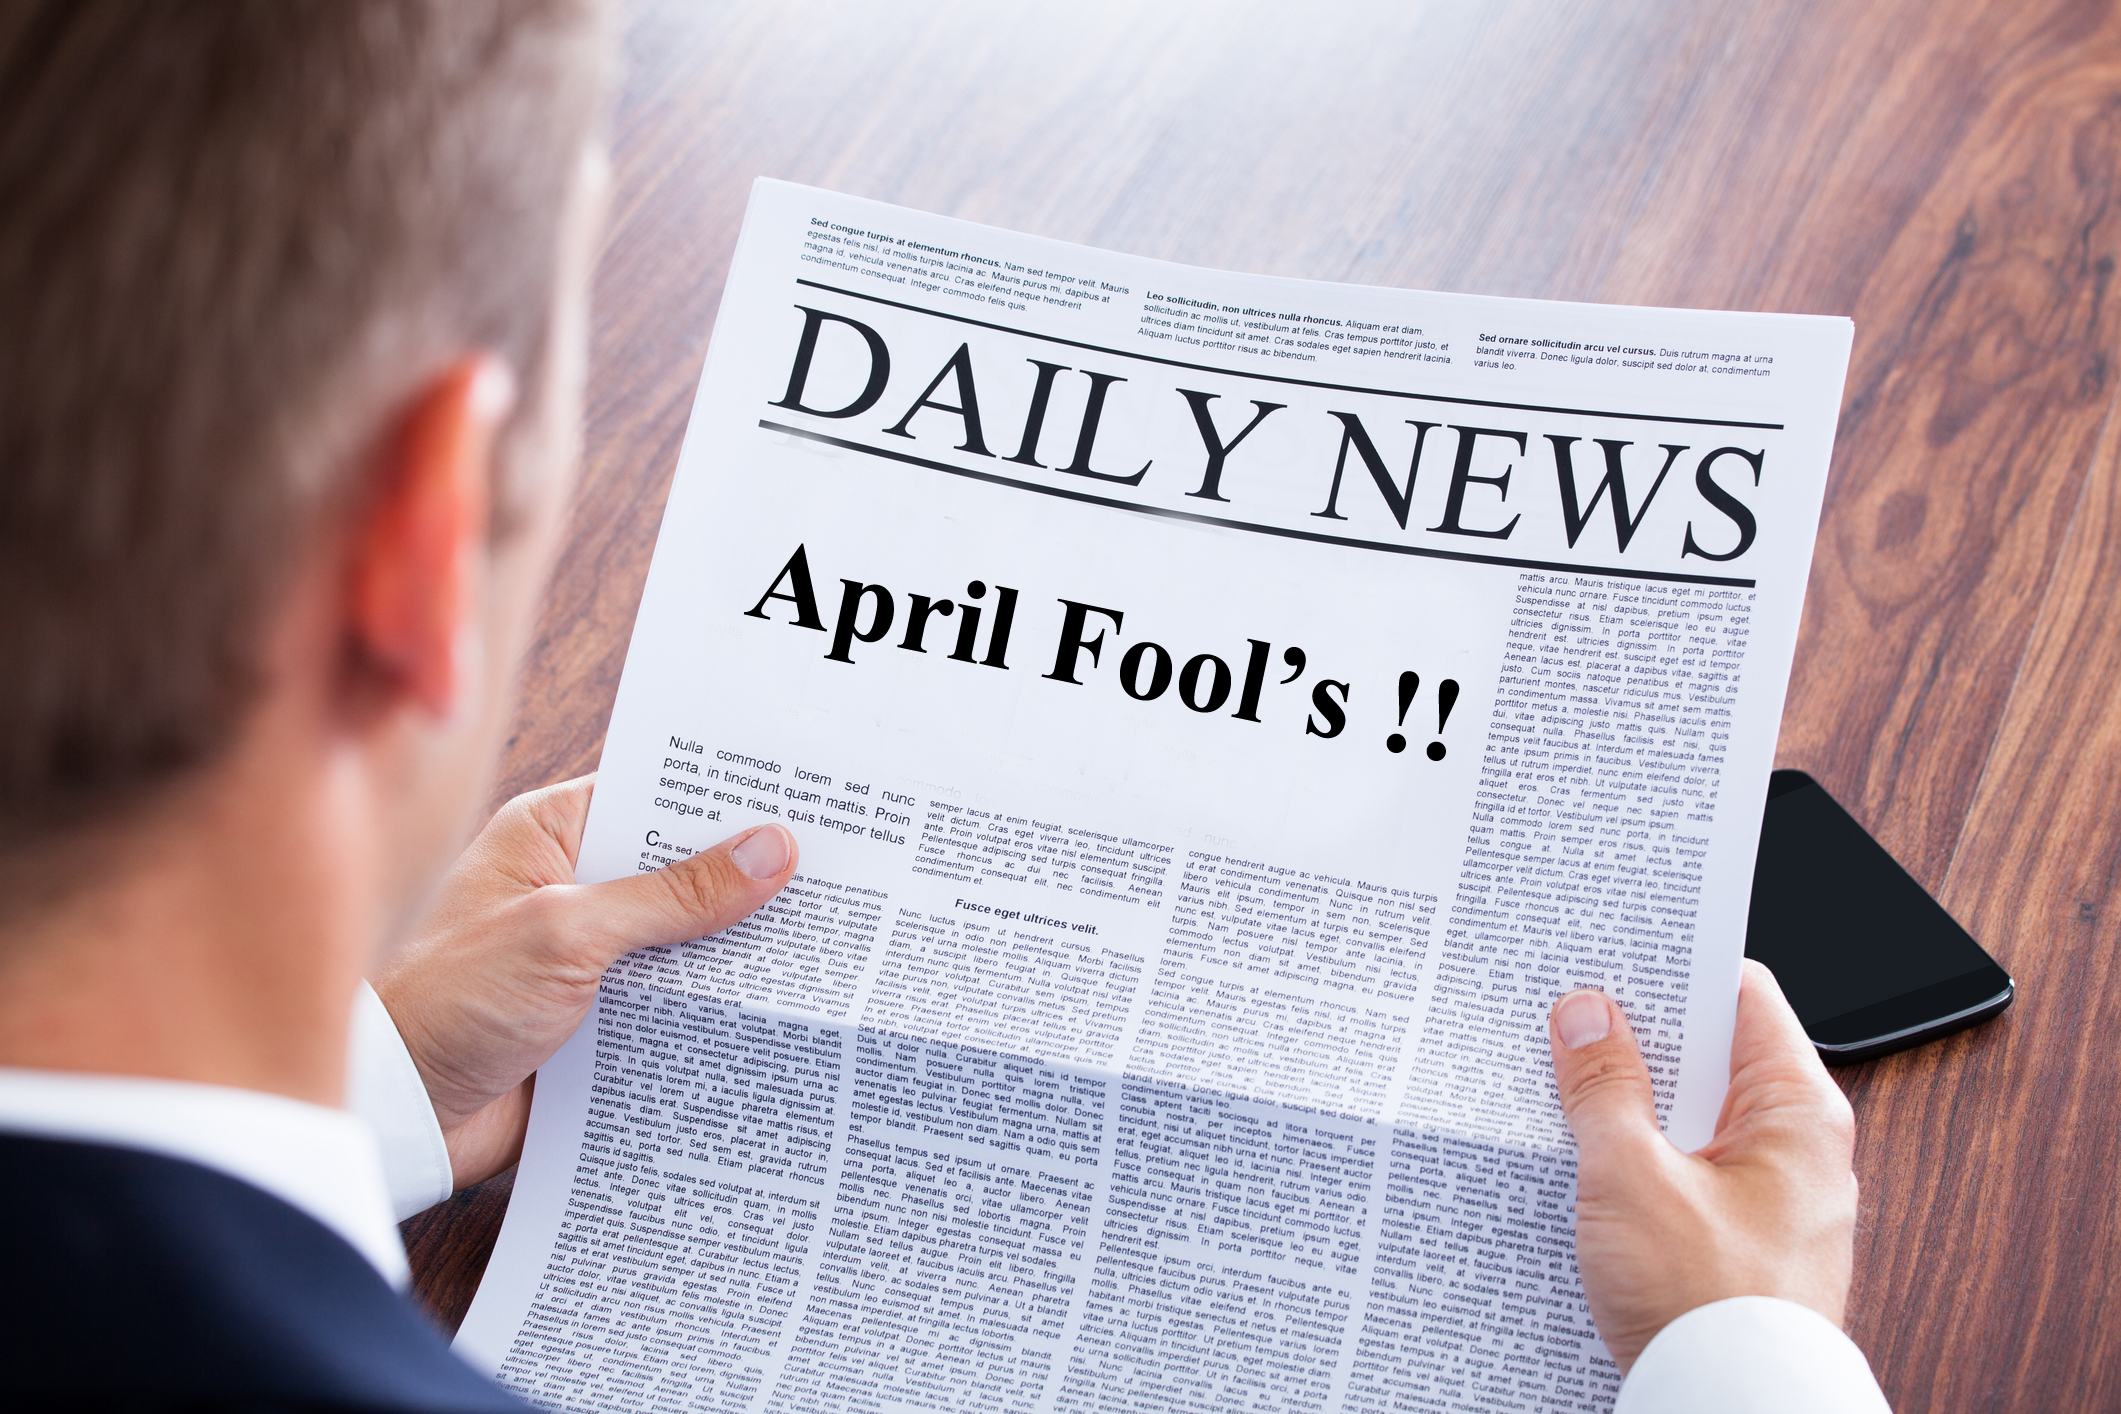 April Fools' newspaper